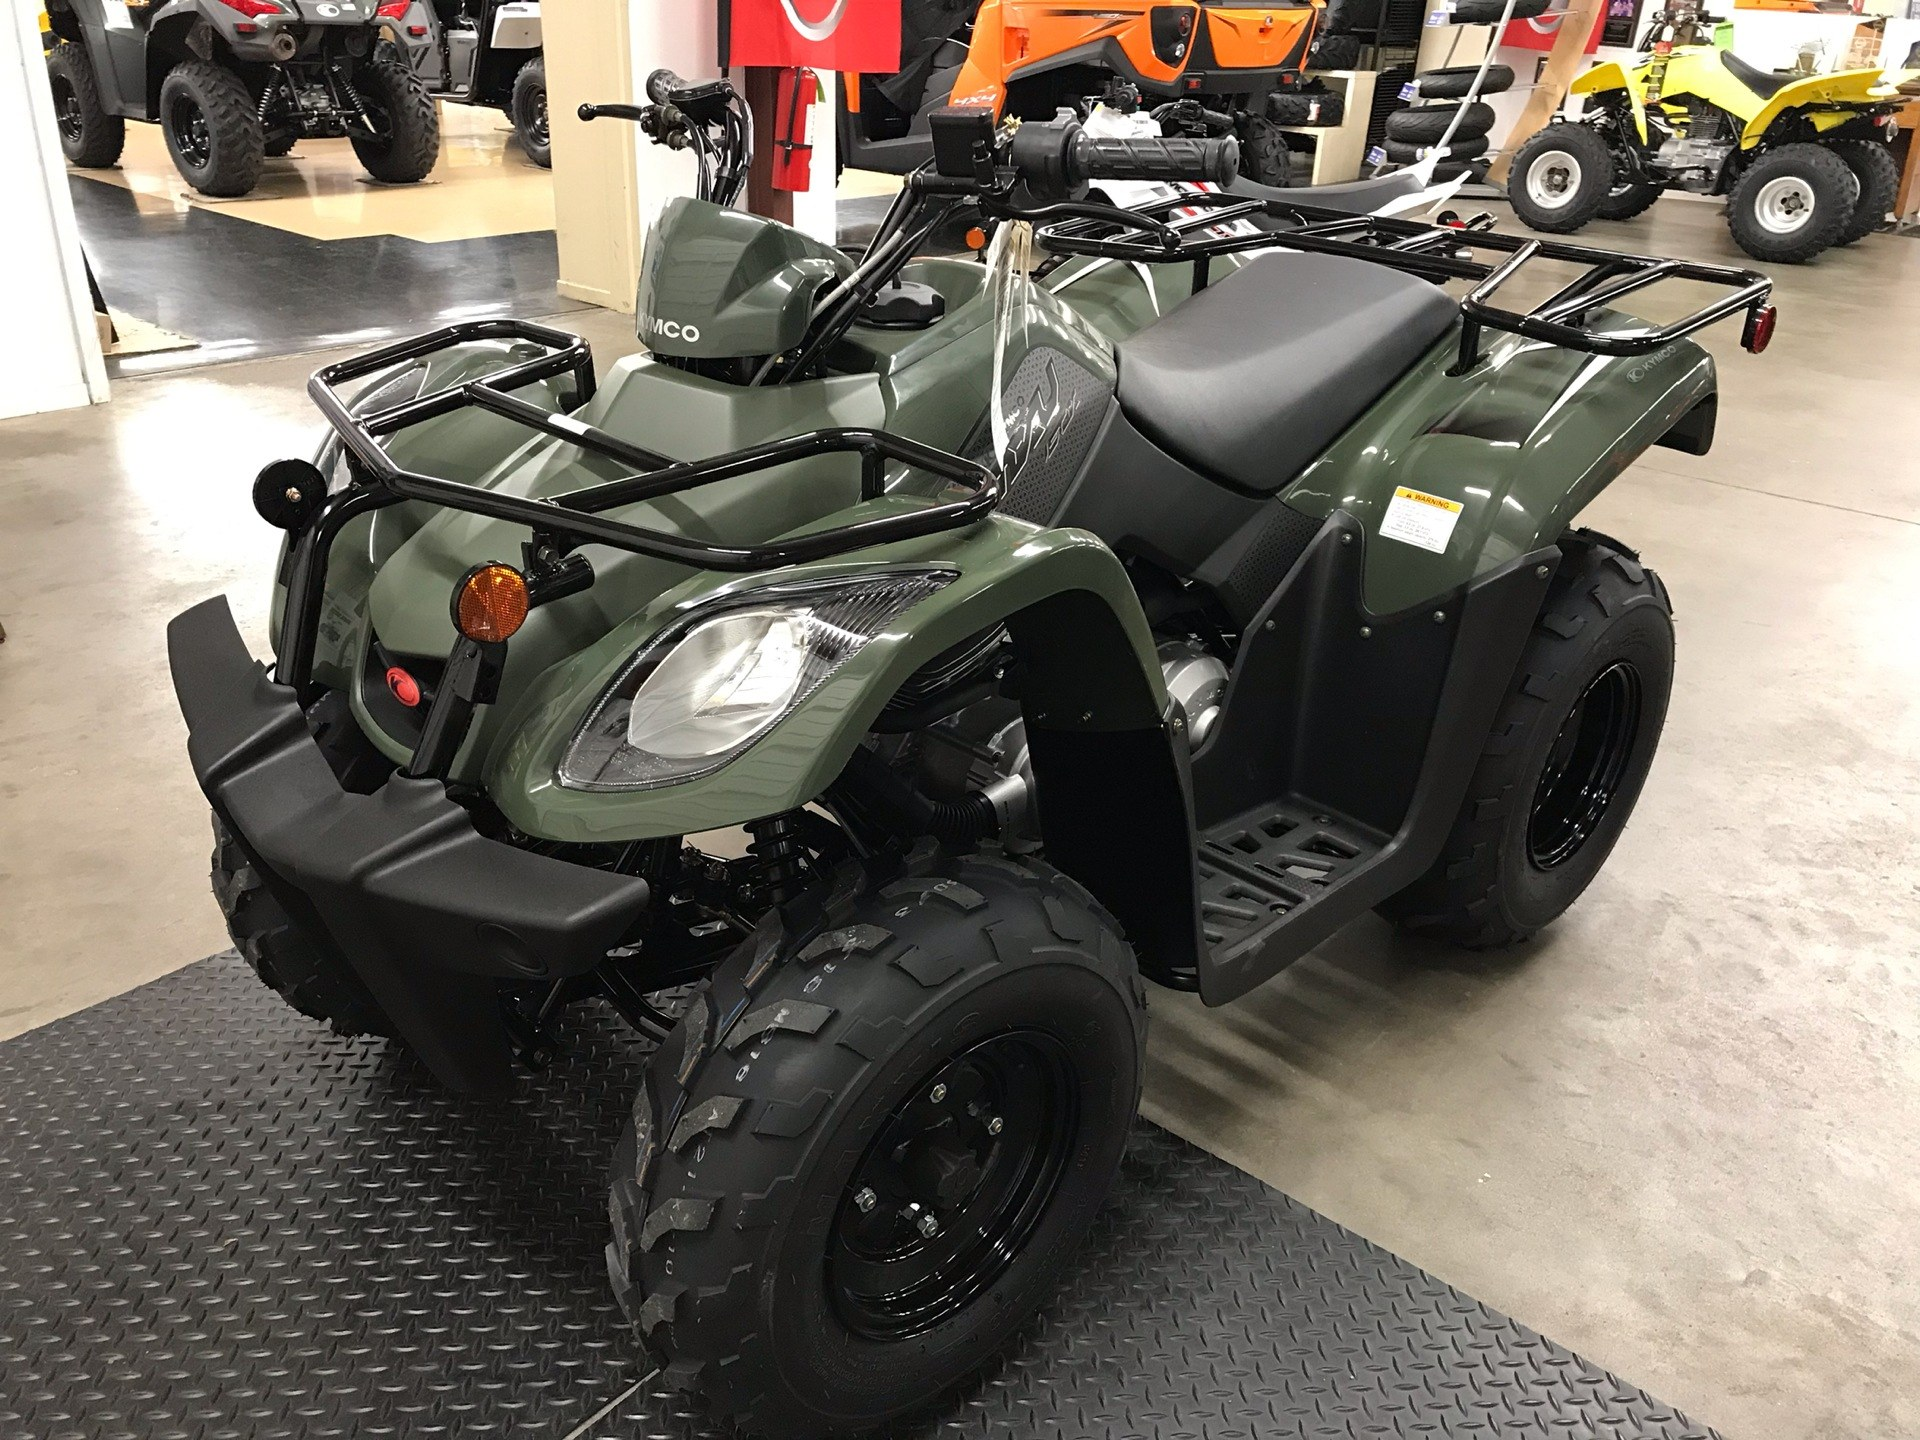 2019 Kymco MXU 150X in Sanford, North Carolina - Photo 6